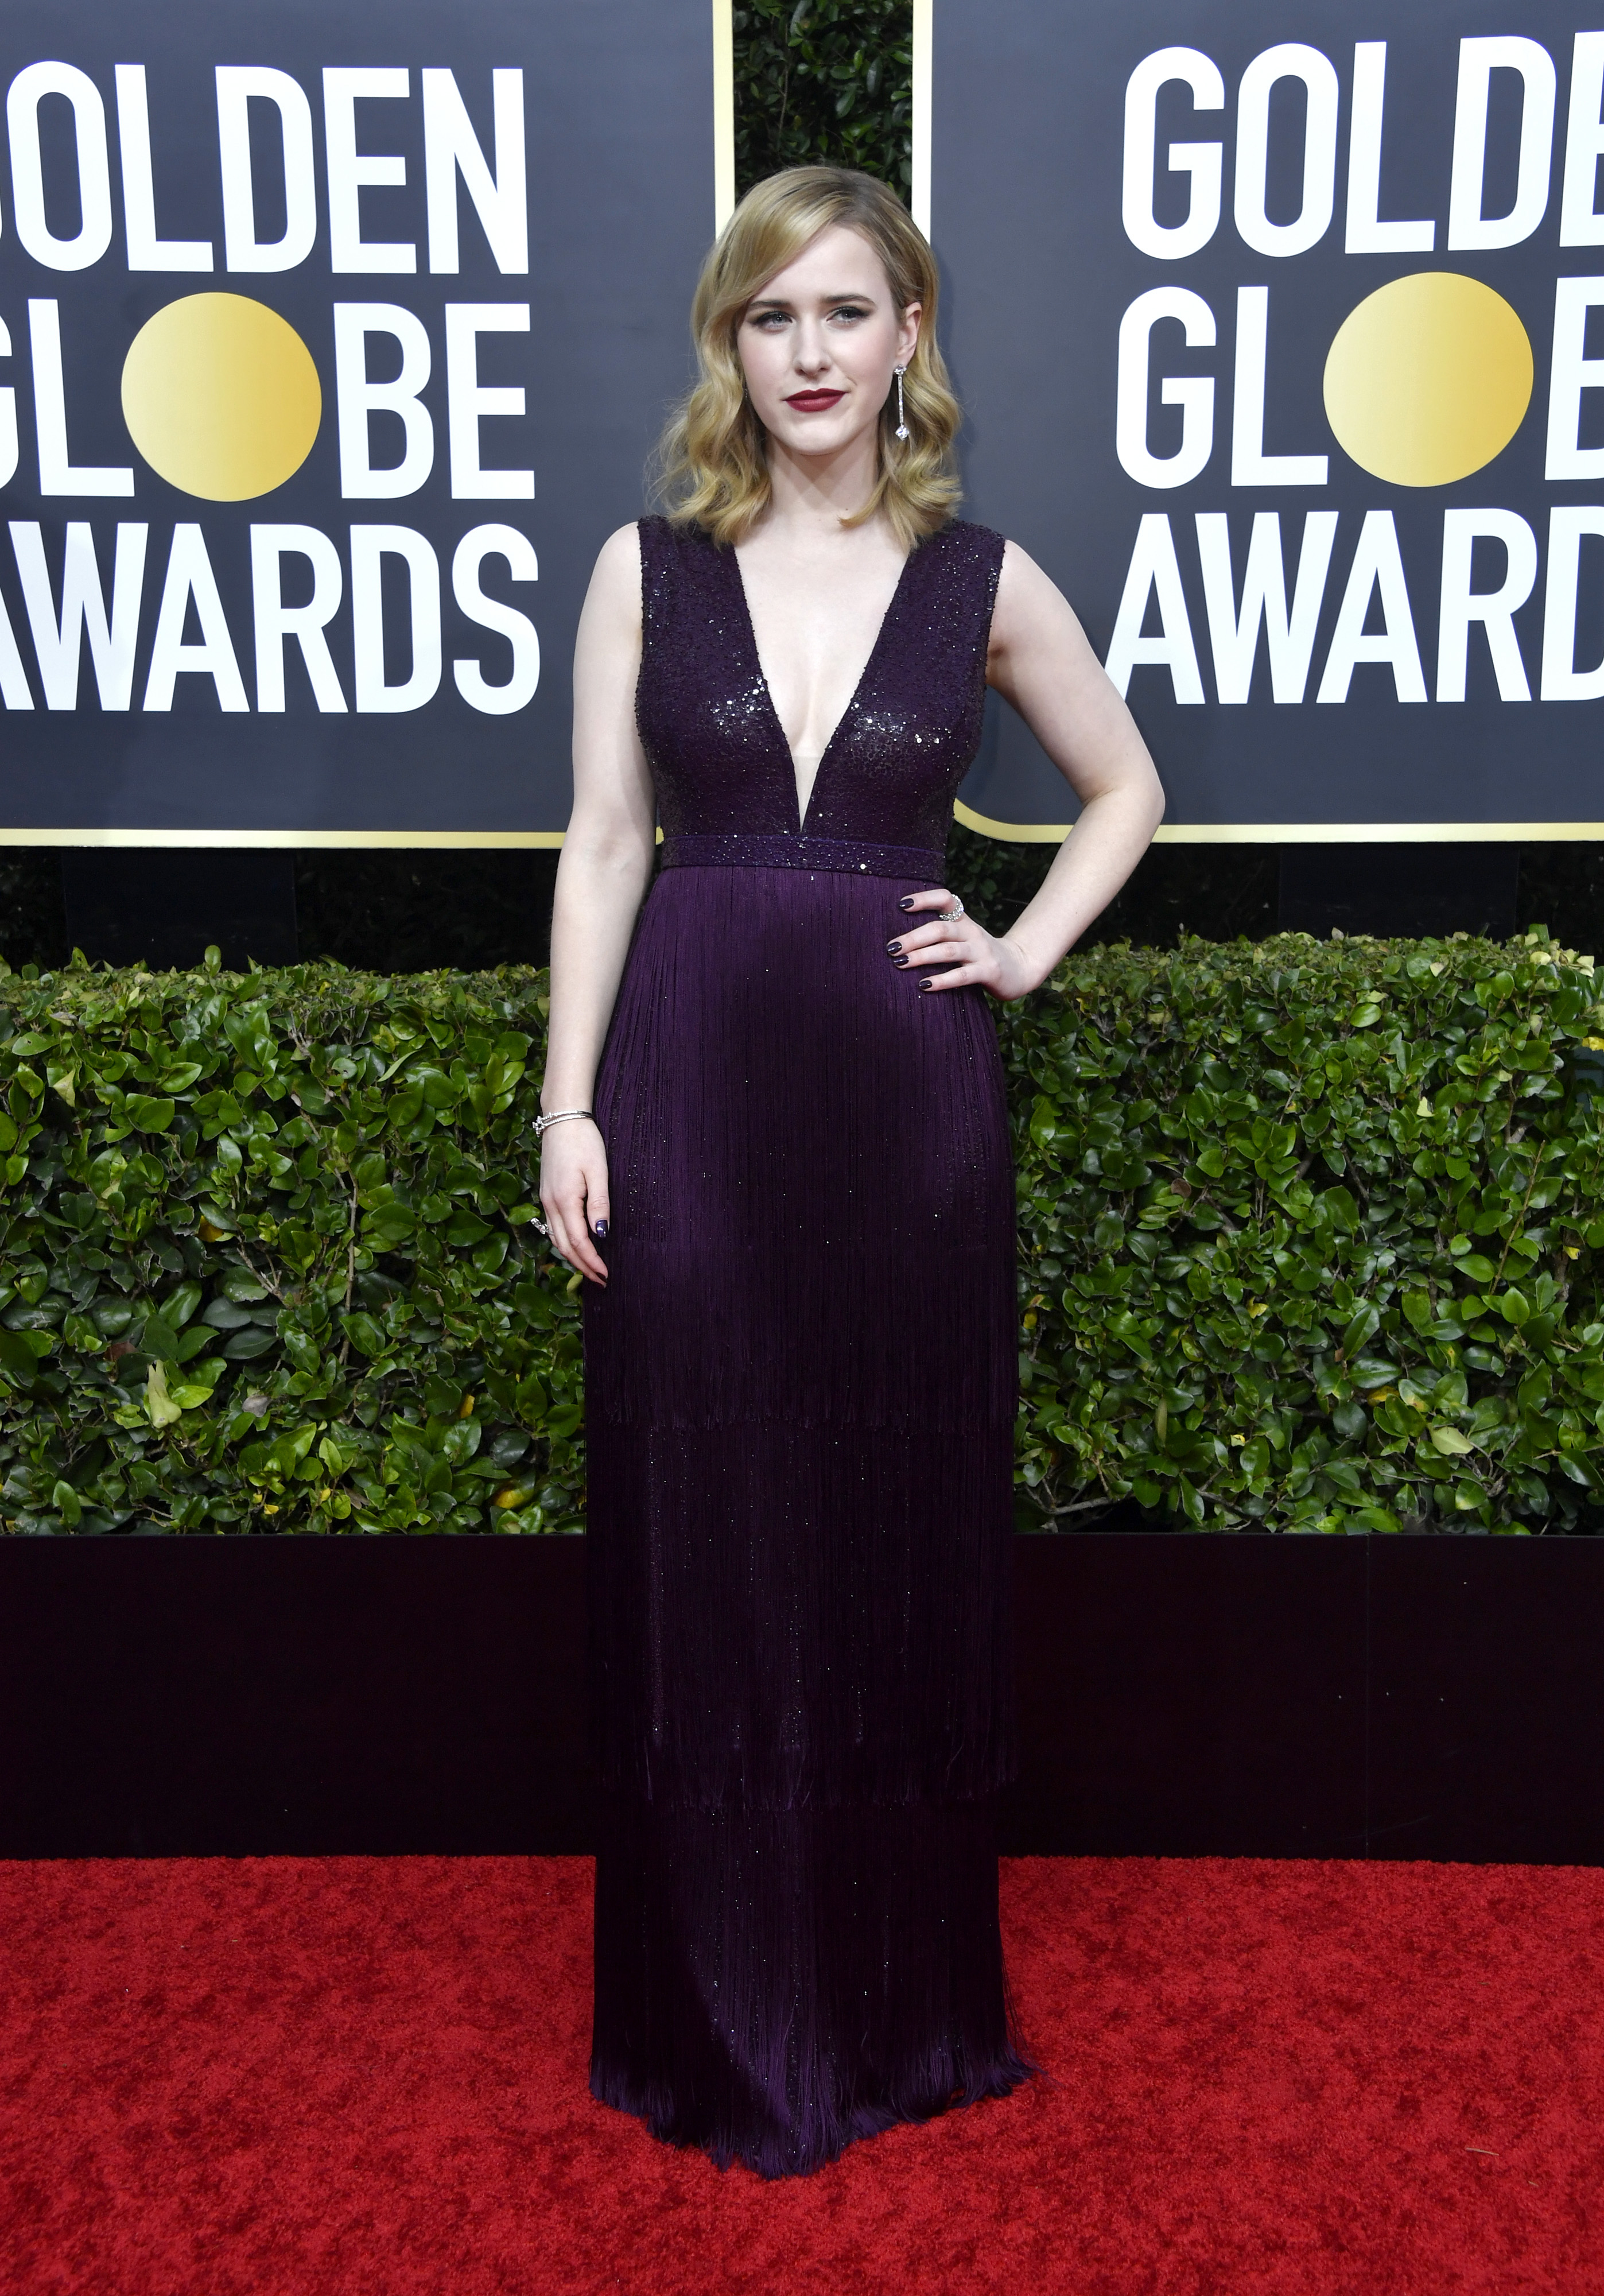 BEVERLY HILLS, CALIFORNIA - JANUARY 05: Rachel Brosnahan attends the 77th Annual Golden Globe Awards at The Beverly Hilton Hotel on January 05, 2020 in Beverly Hills, California. (Photo by Frazer Harrison/Getty Images)